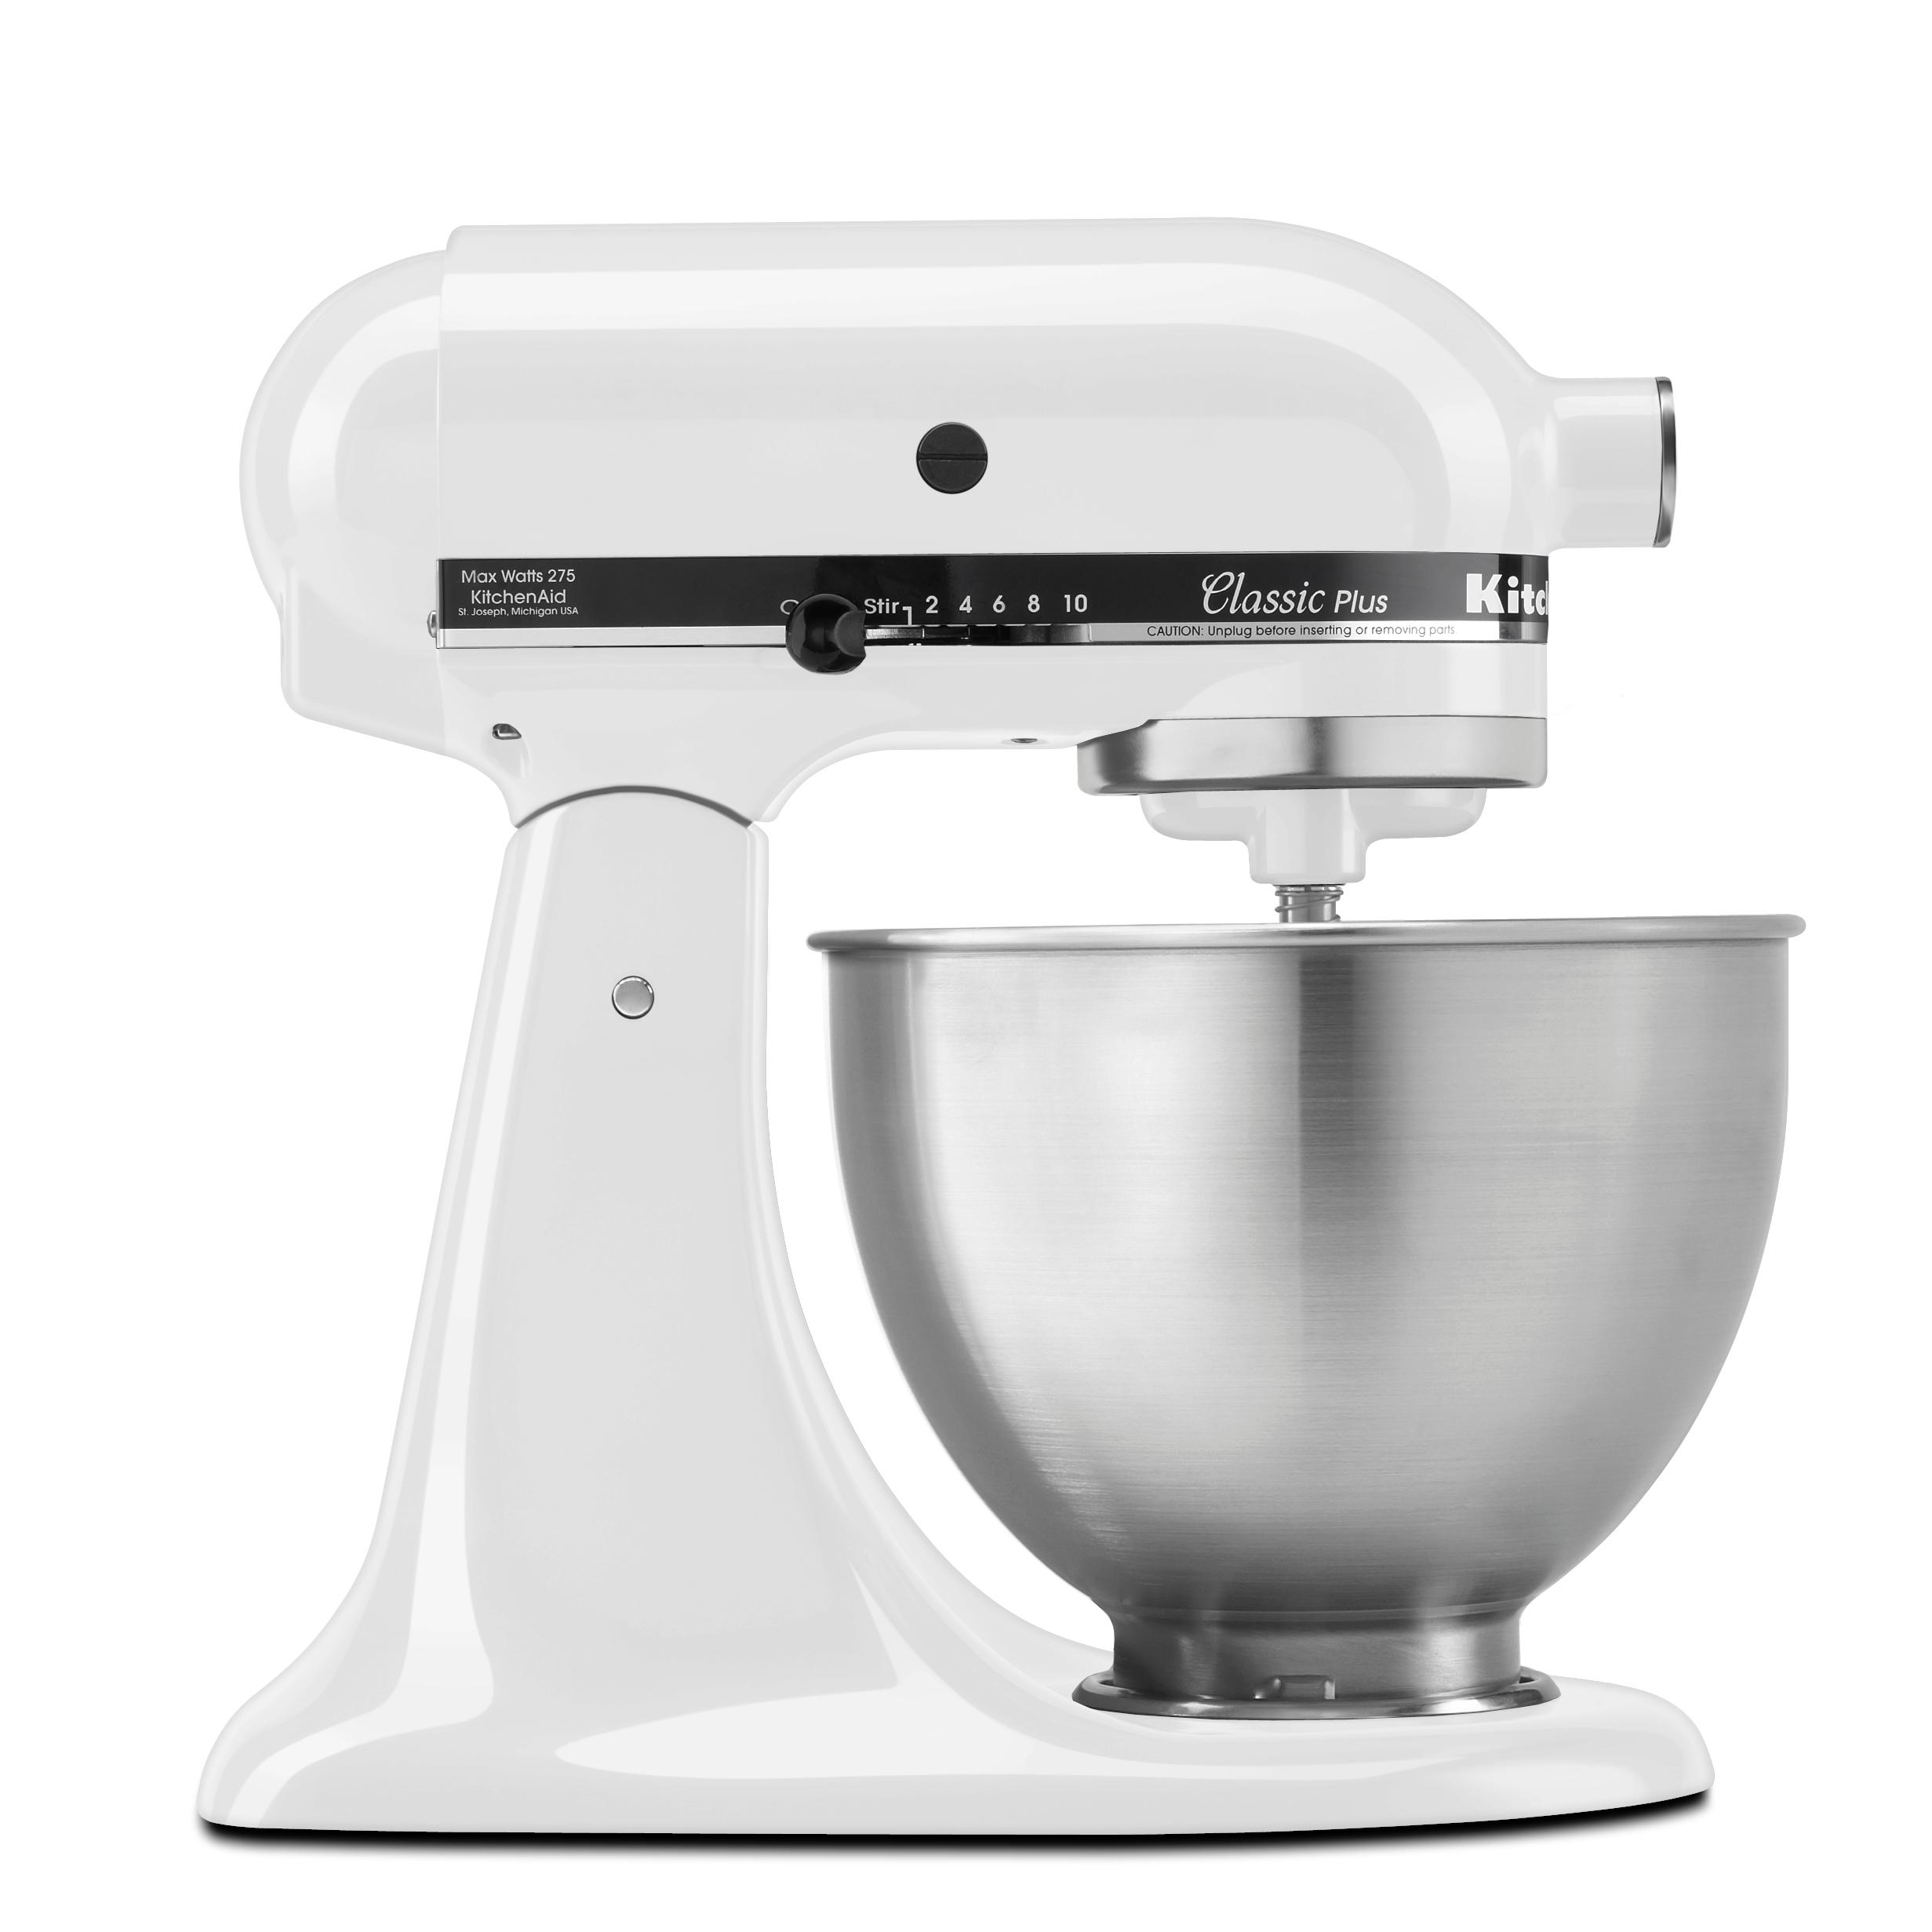 kitchenaid ksm75wh classic plus series 4 5 quart tilt head stand mixer white. Black Bedroom Furniture Sets. Home Design Ideas